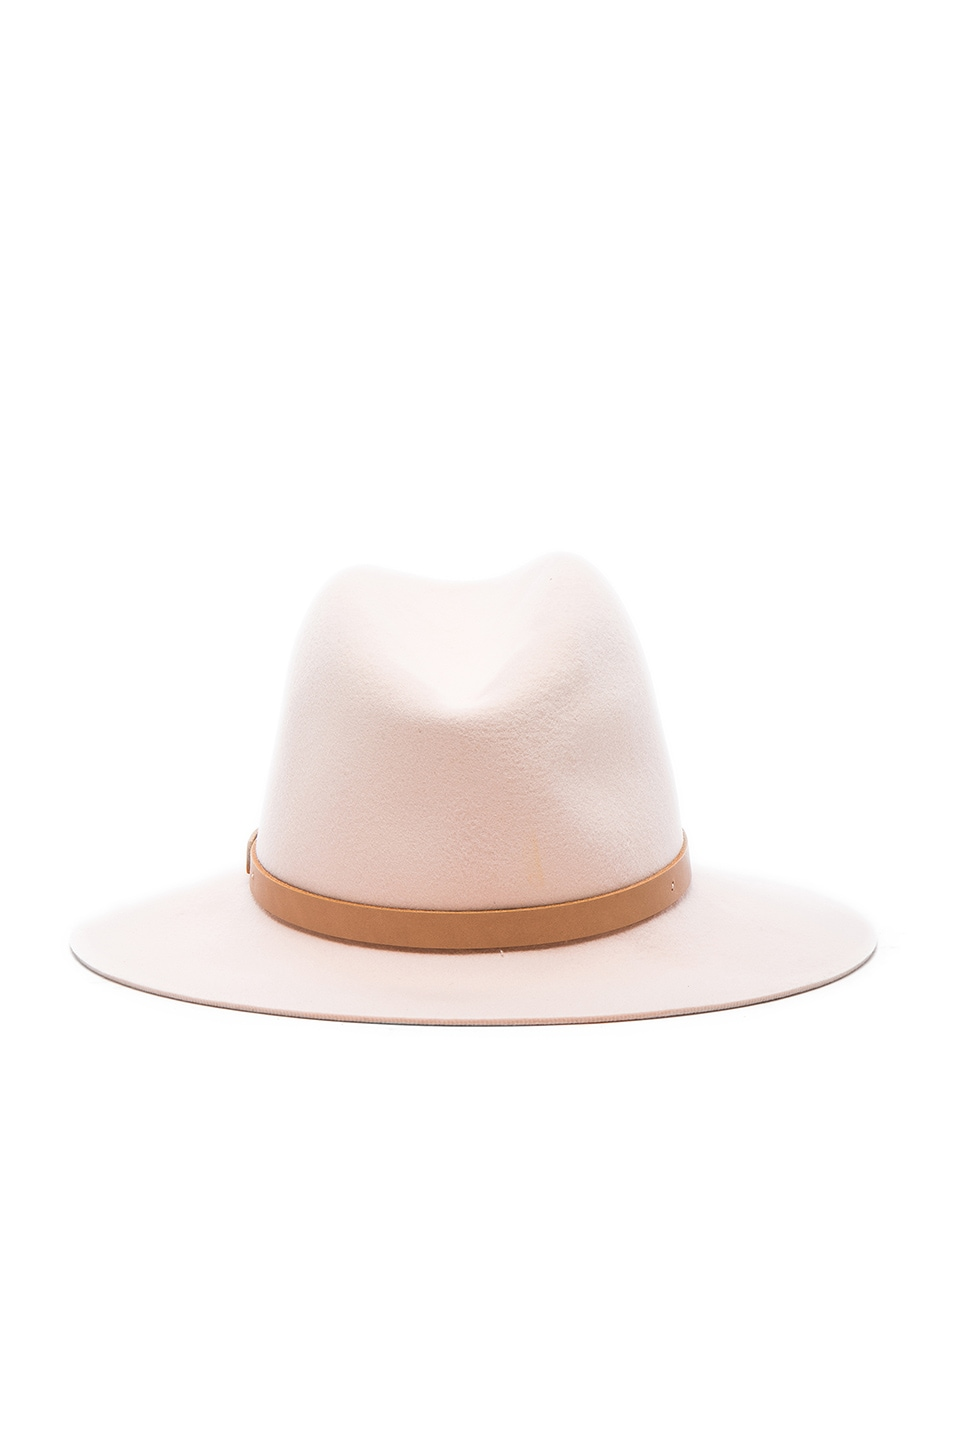 Image 4 of Rag & Bone Floppy Brim Fedora Hat in Shell